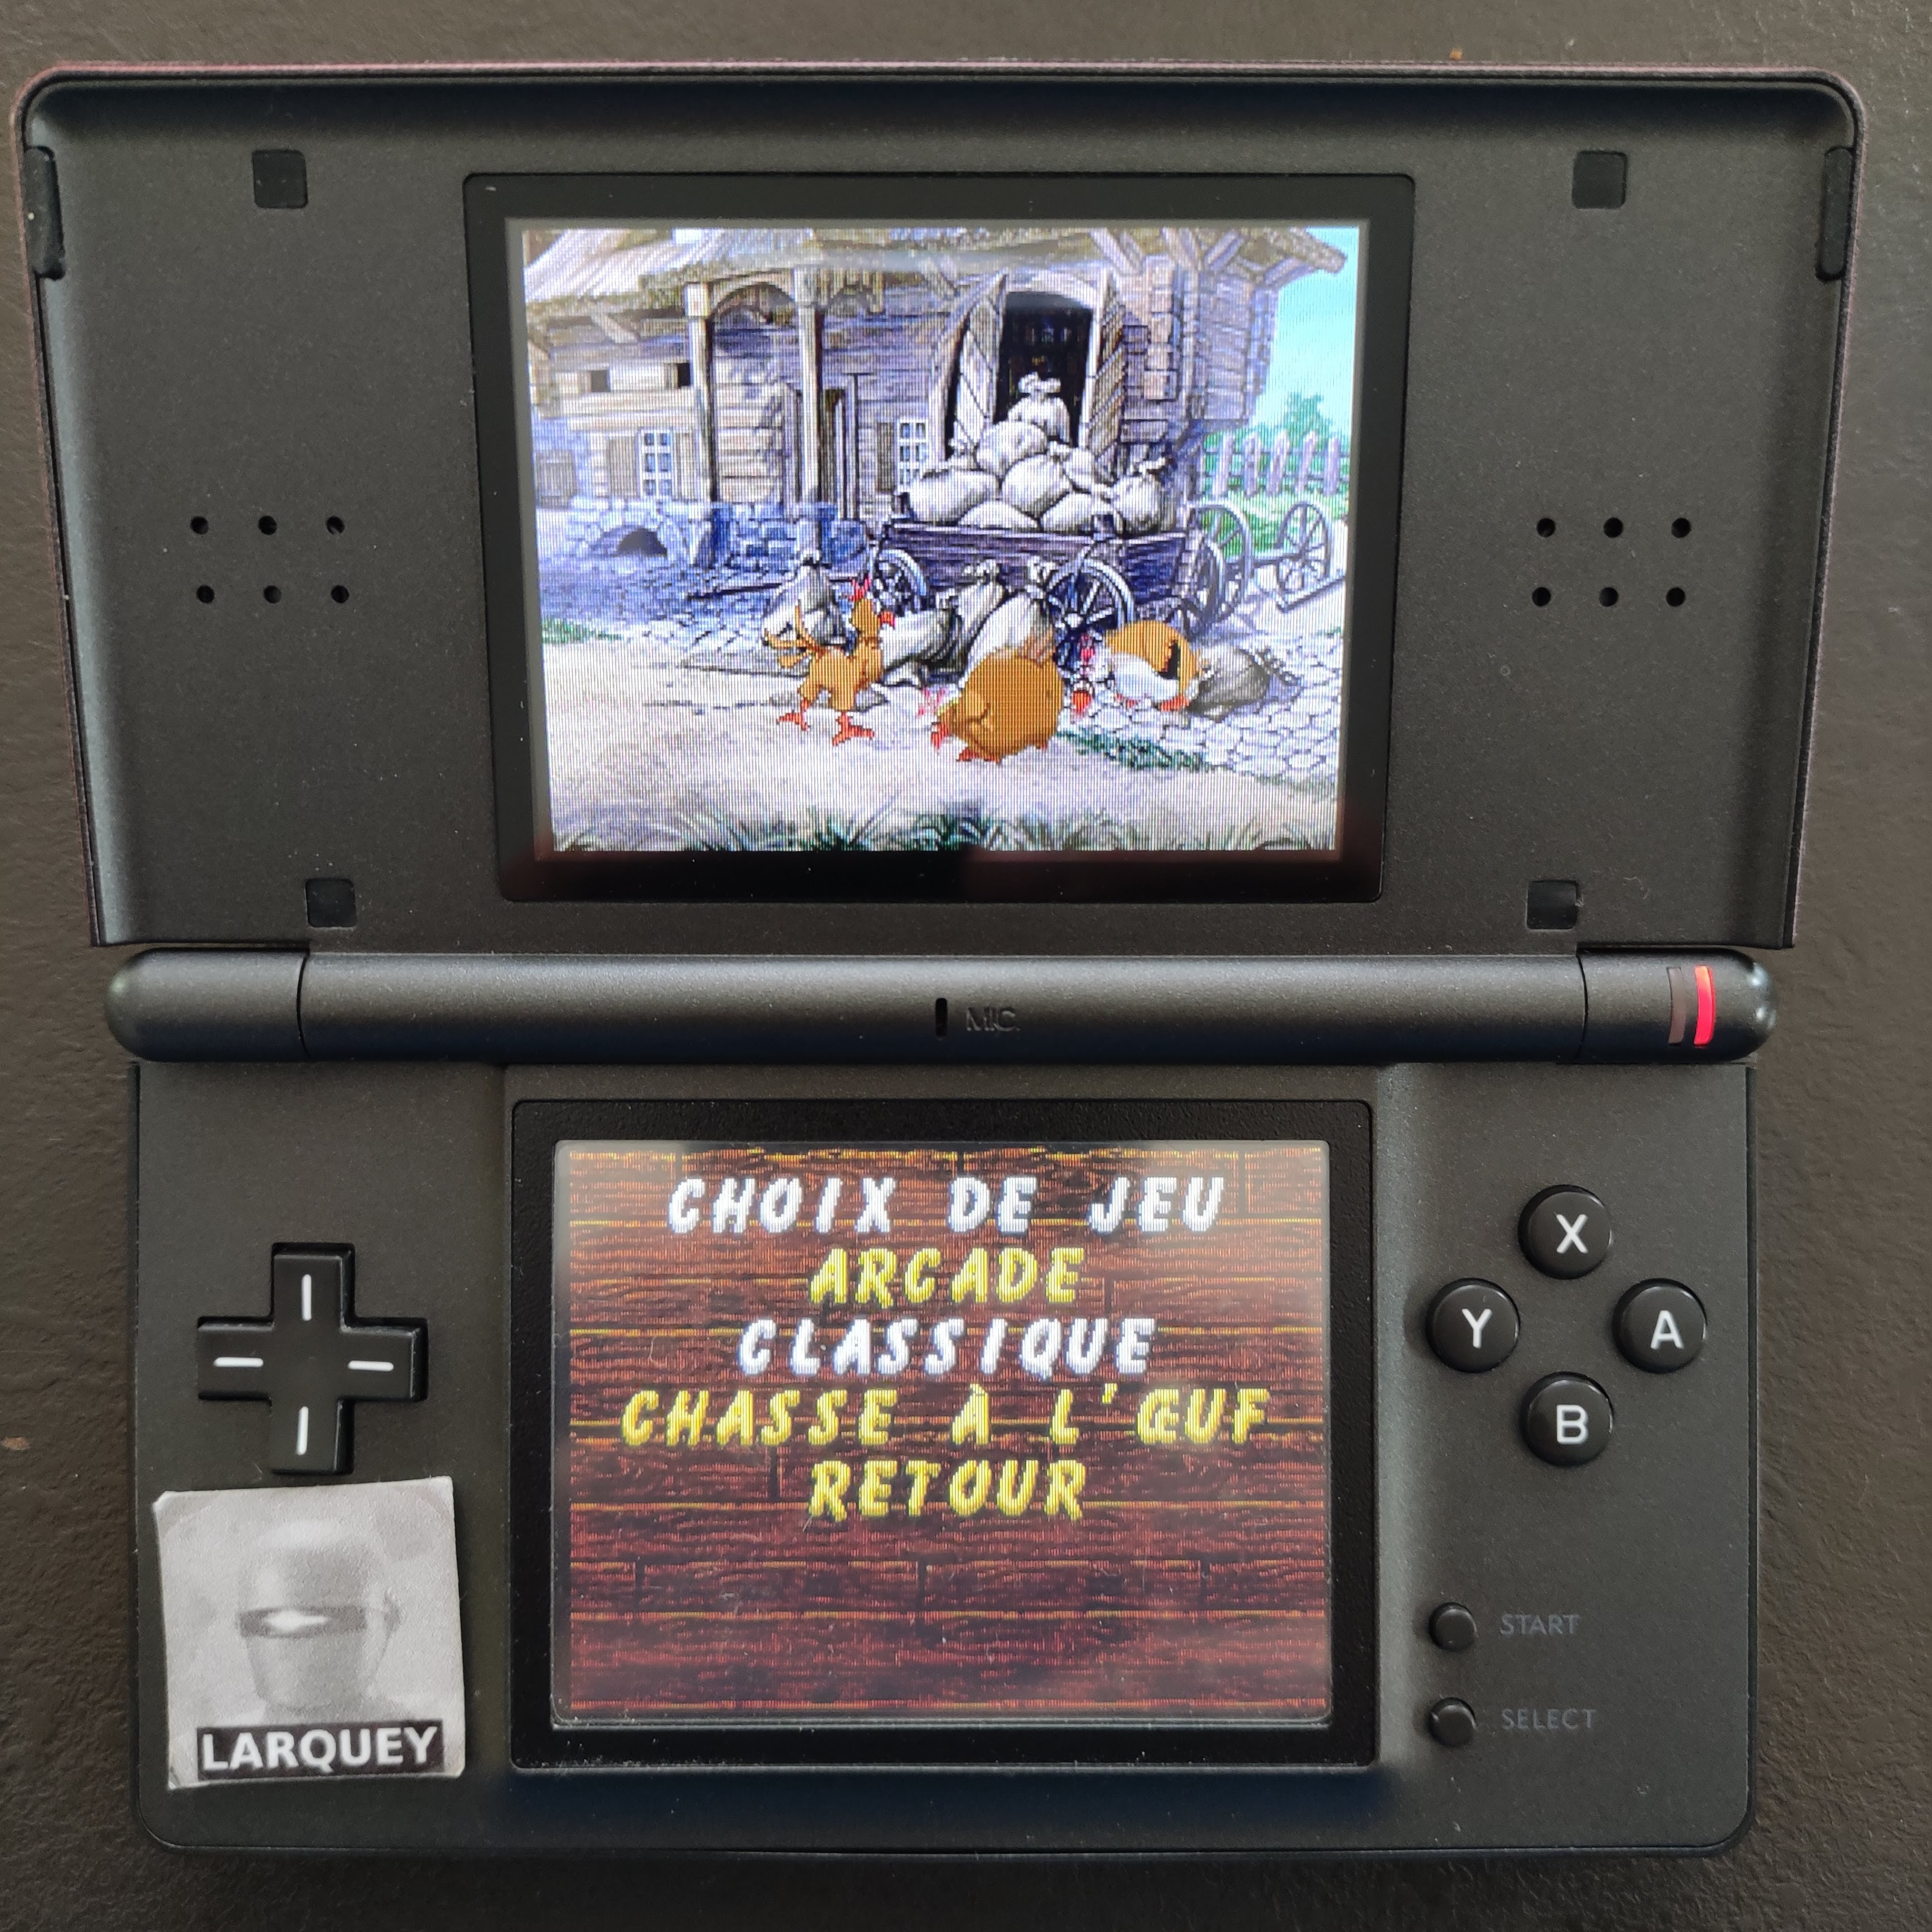 Larquey: Chicken Shoot [Classic: Normal] (Nintendo DS) 2,025 points on 2020-09-27 03:38:19